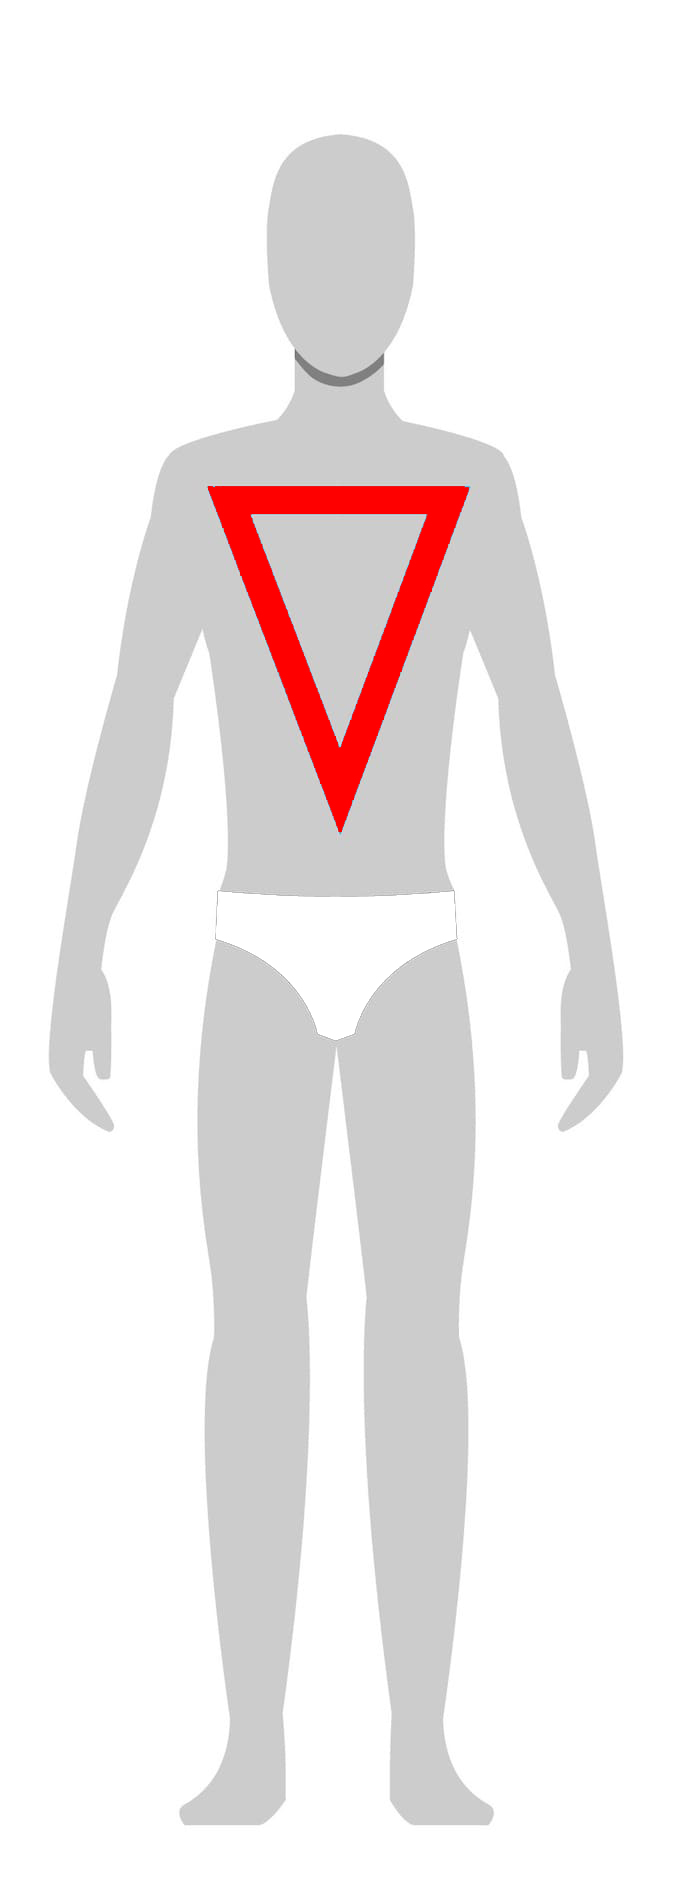 Inverted Triangle - • Athletic• Moderate to heavy muscle definition• Narrow, defined waist• Muscular arms and legs• Broad chest